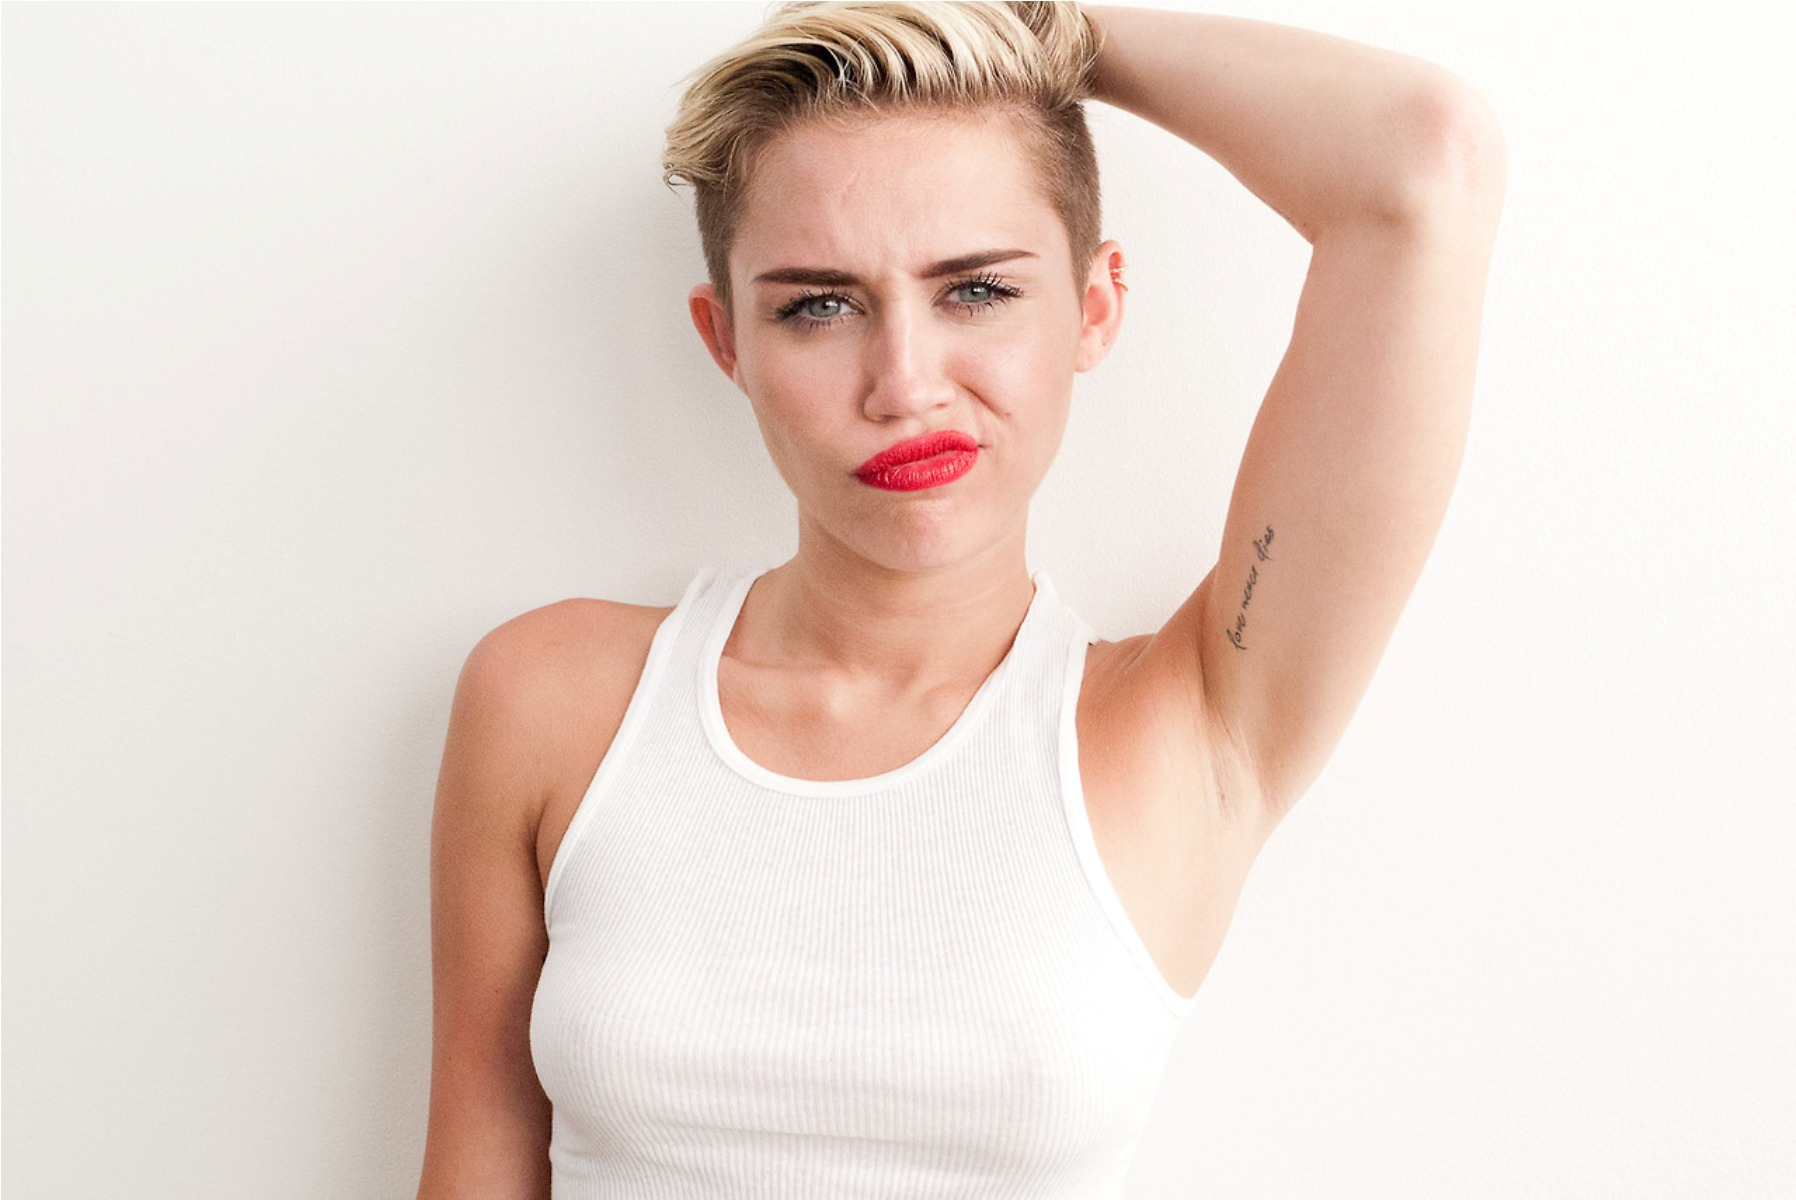 Miley Cyrus HD Wallpapers for desktop download